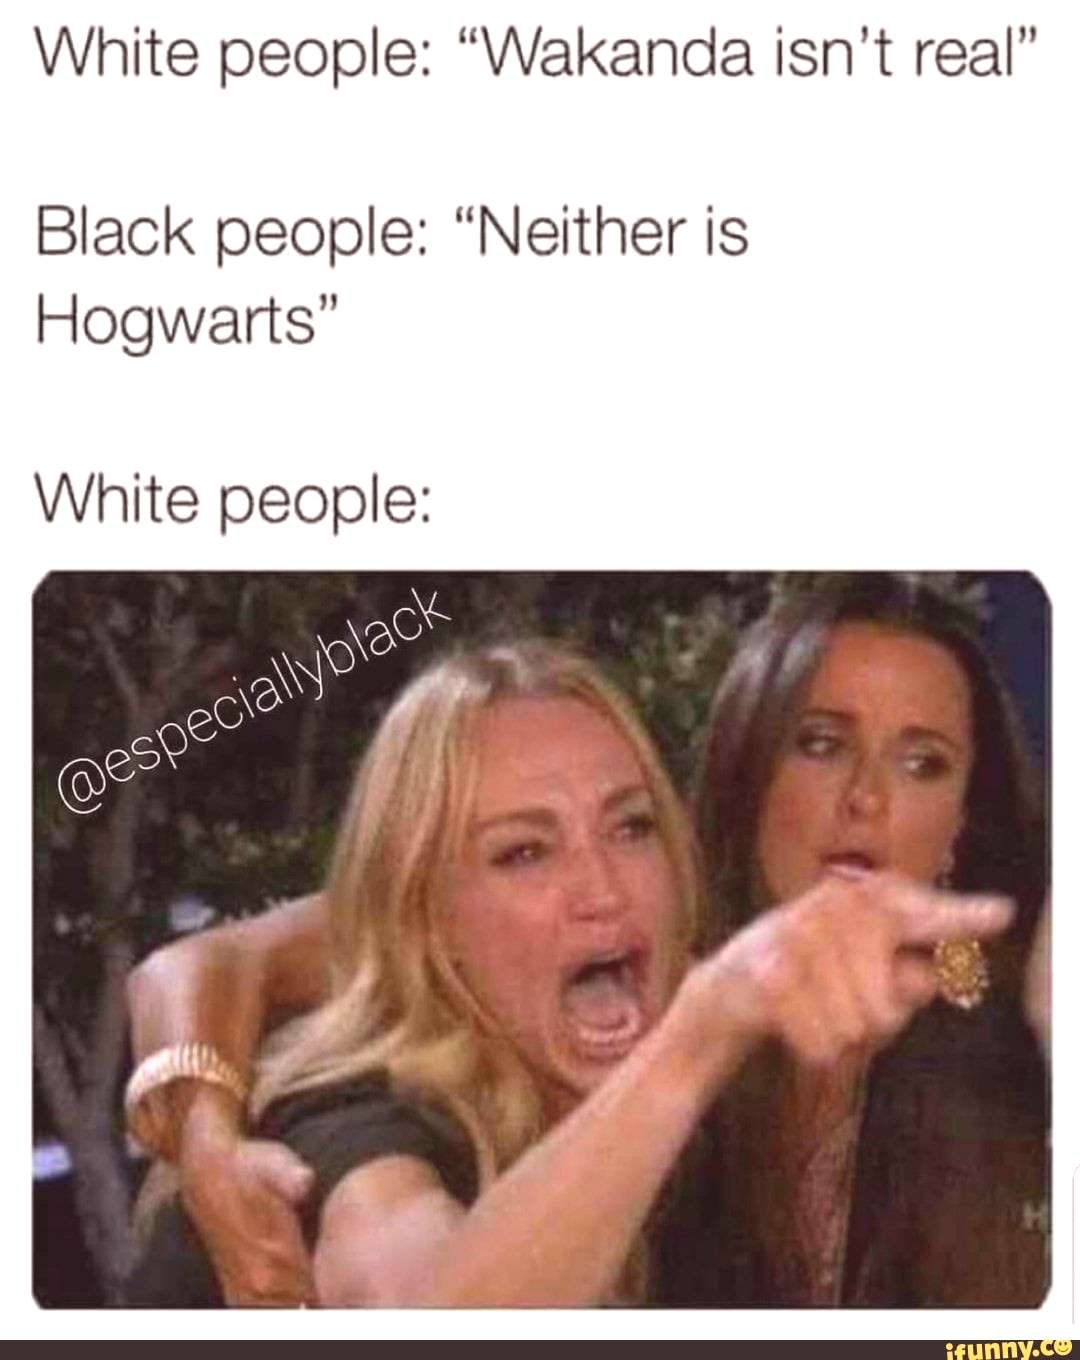 """Picture memes dXjadUKr6: 5 comments — iFunny White people: """"Wakanda isn't real"""